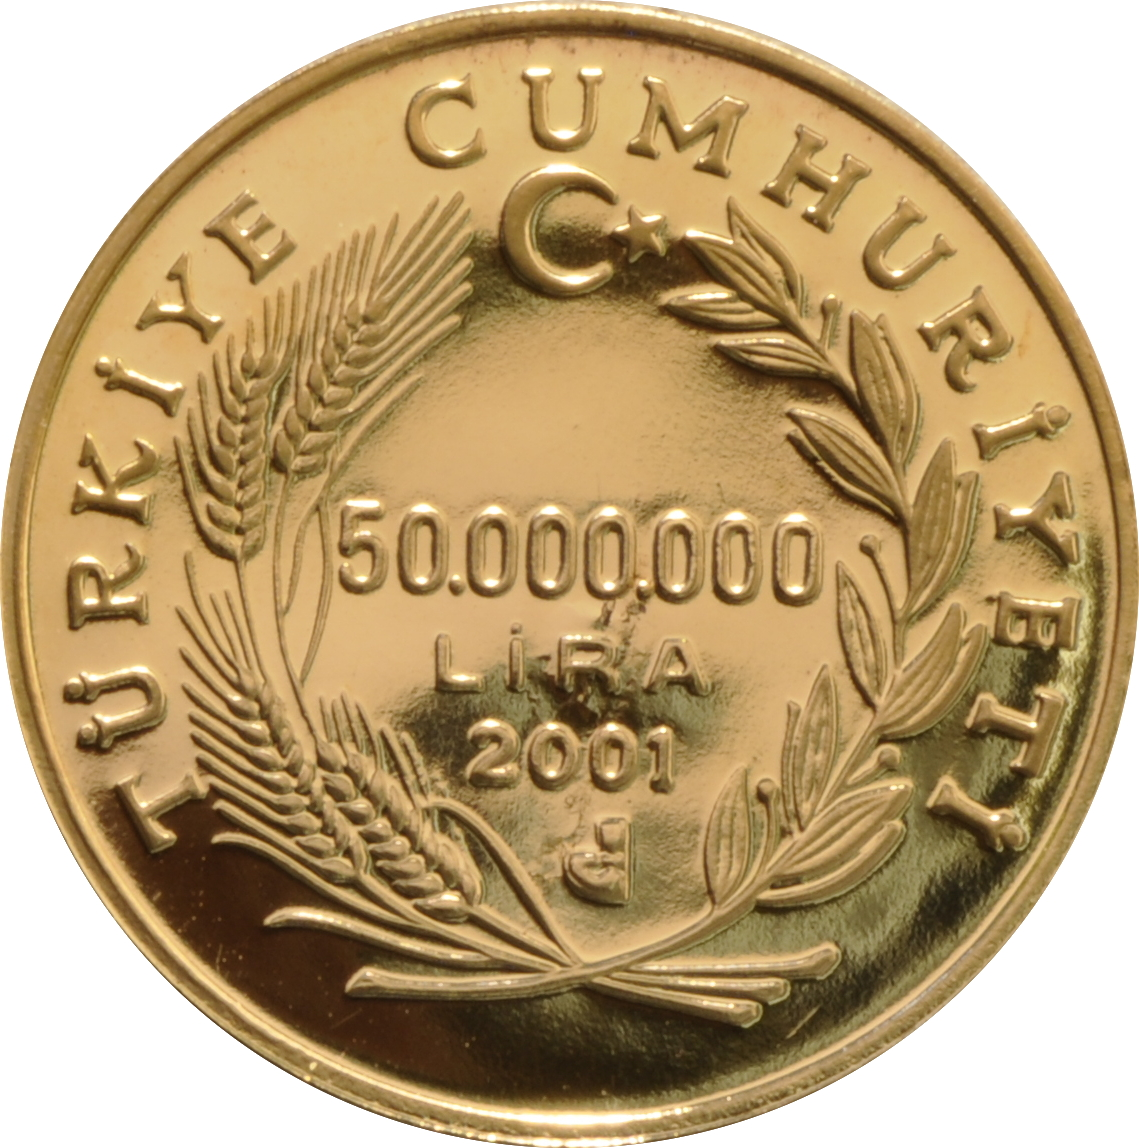 2001 Turkish 50 Lira Gold Coin 163 423